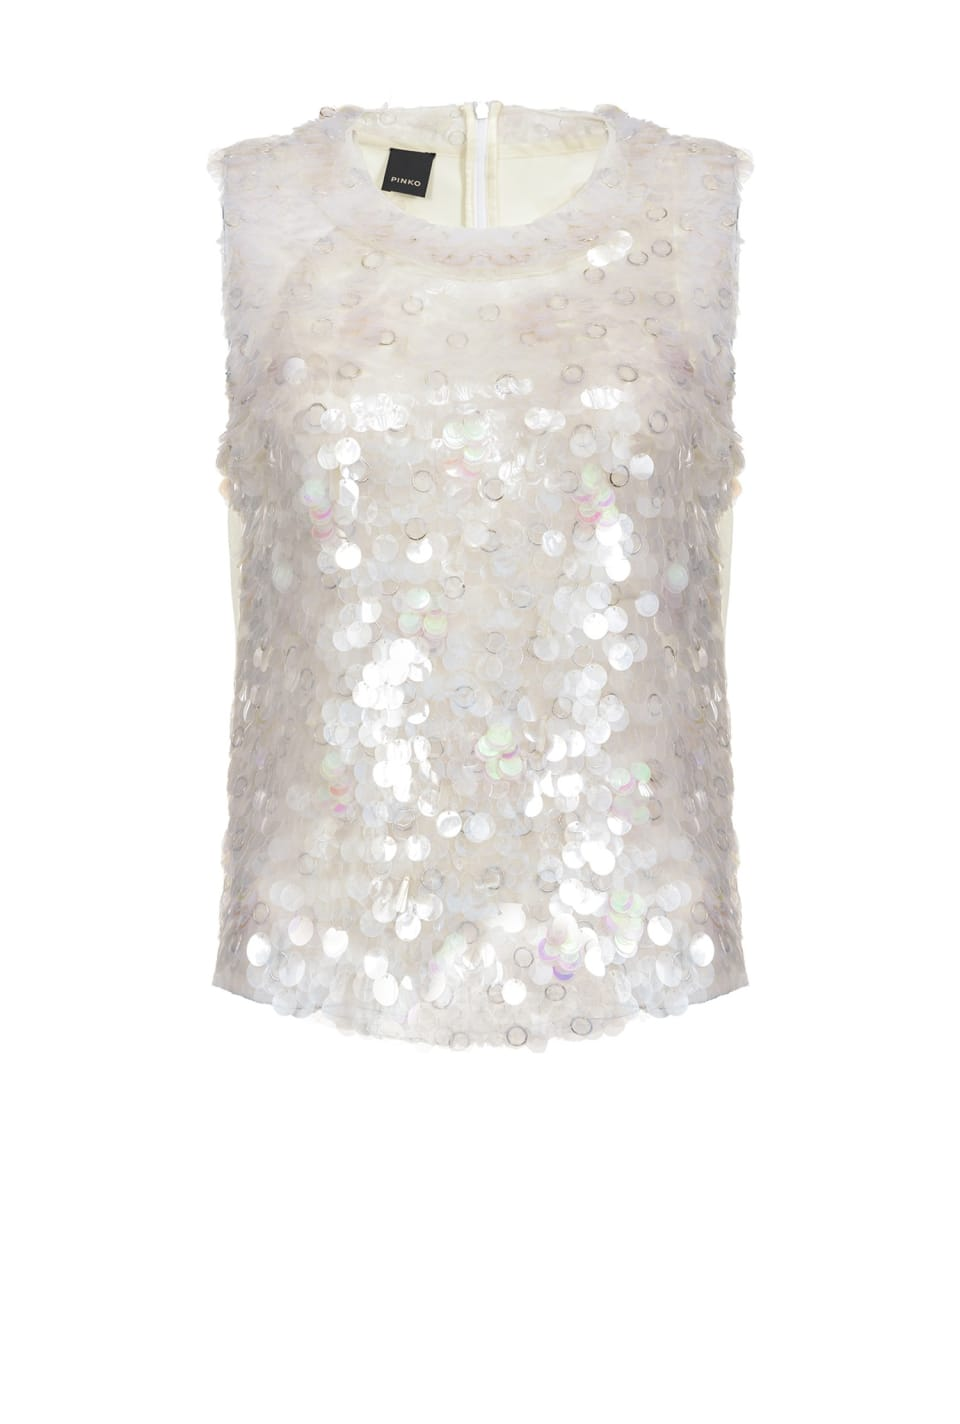 Iridescent full sequins top